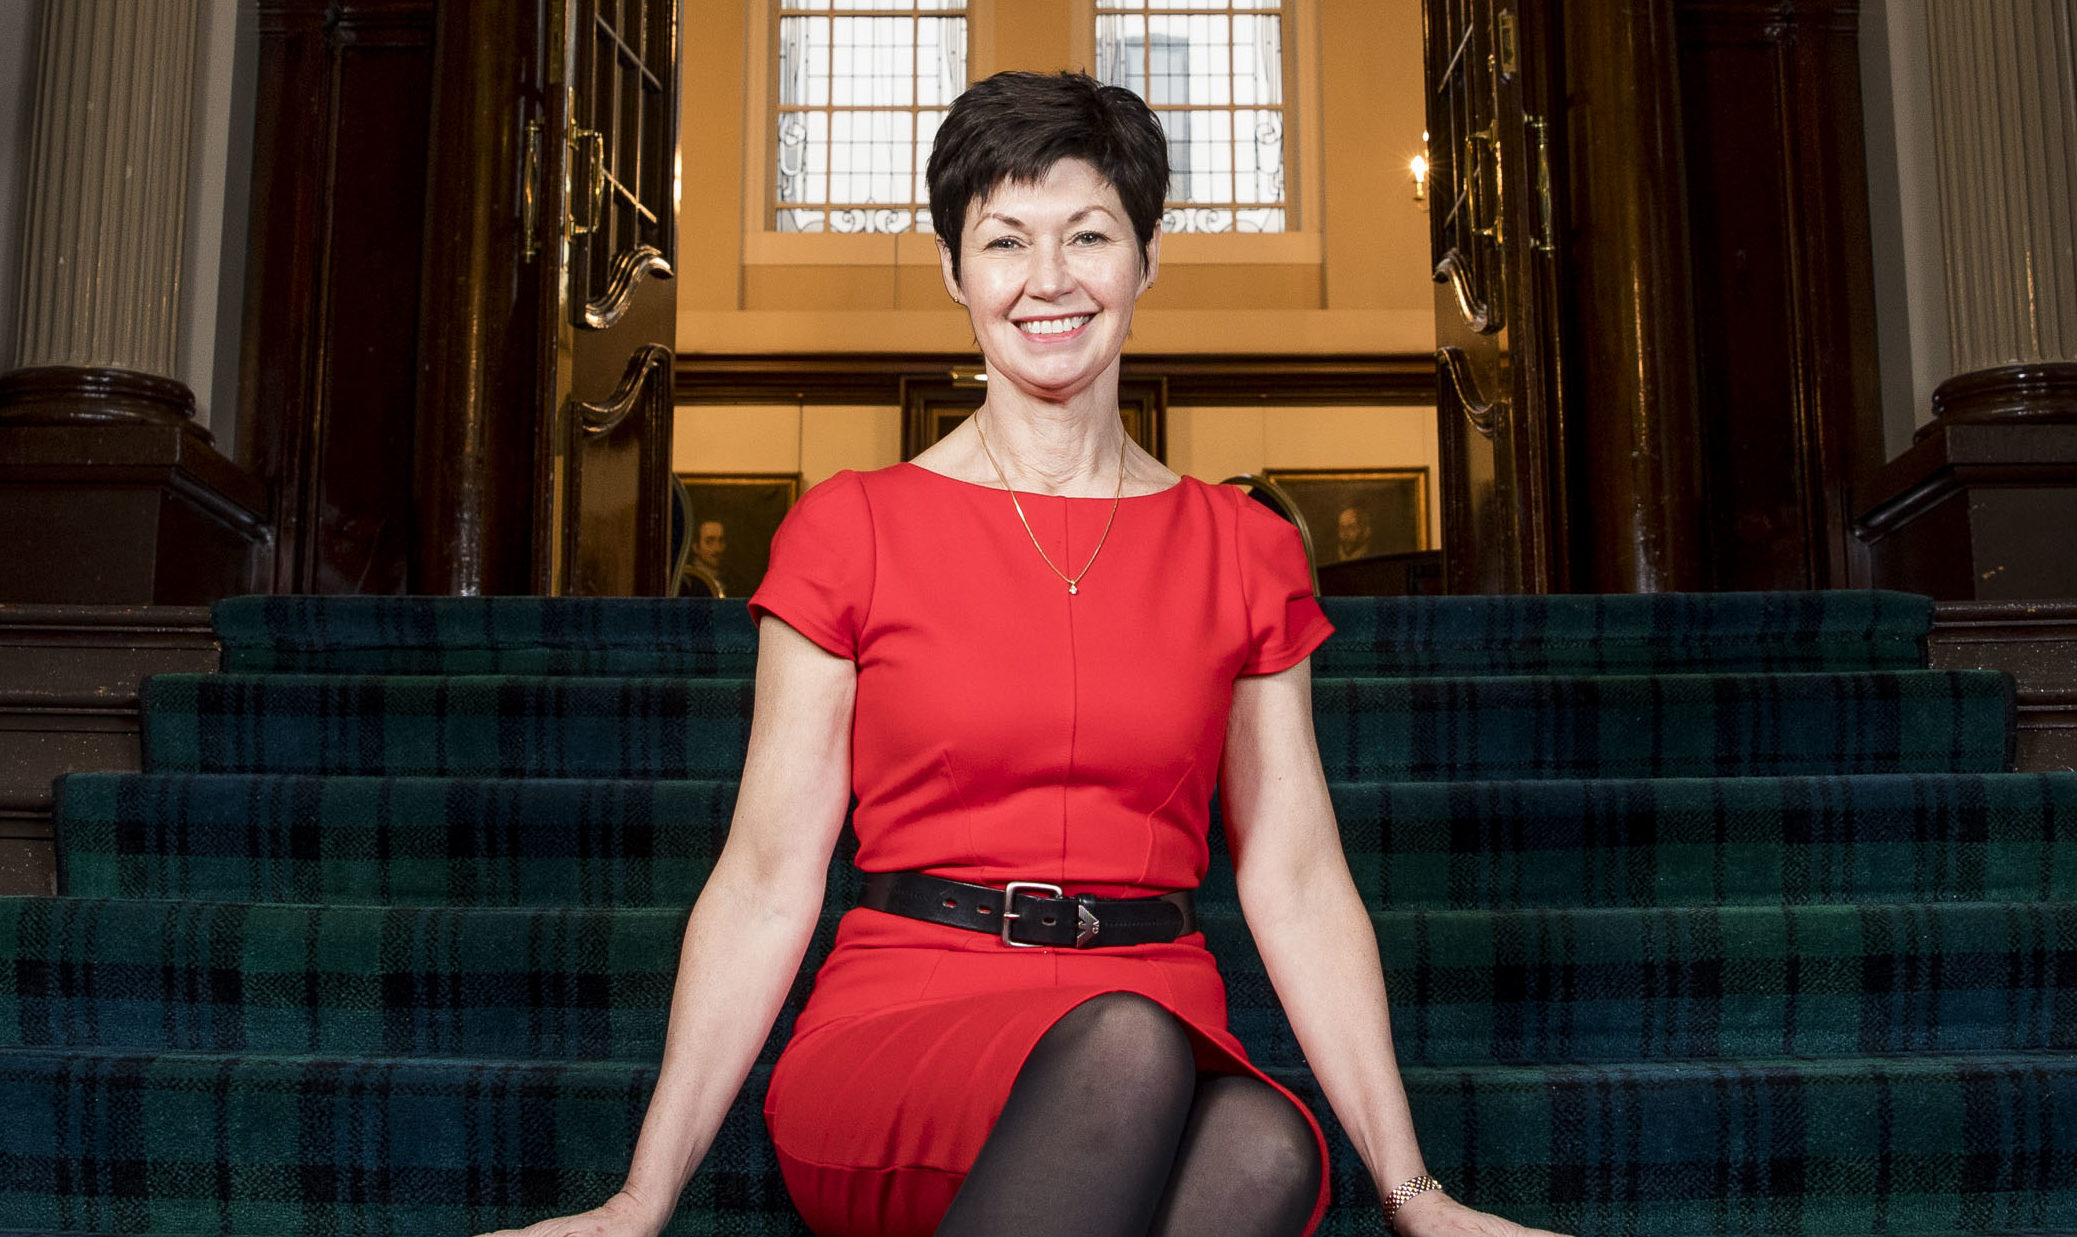 Jackie Taylor in the Royal College where she is first female president (Andrew Cawley / DC Thomson)